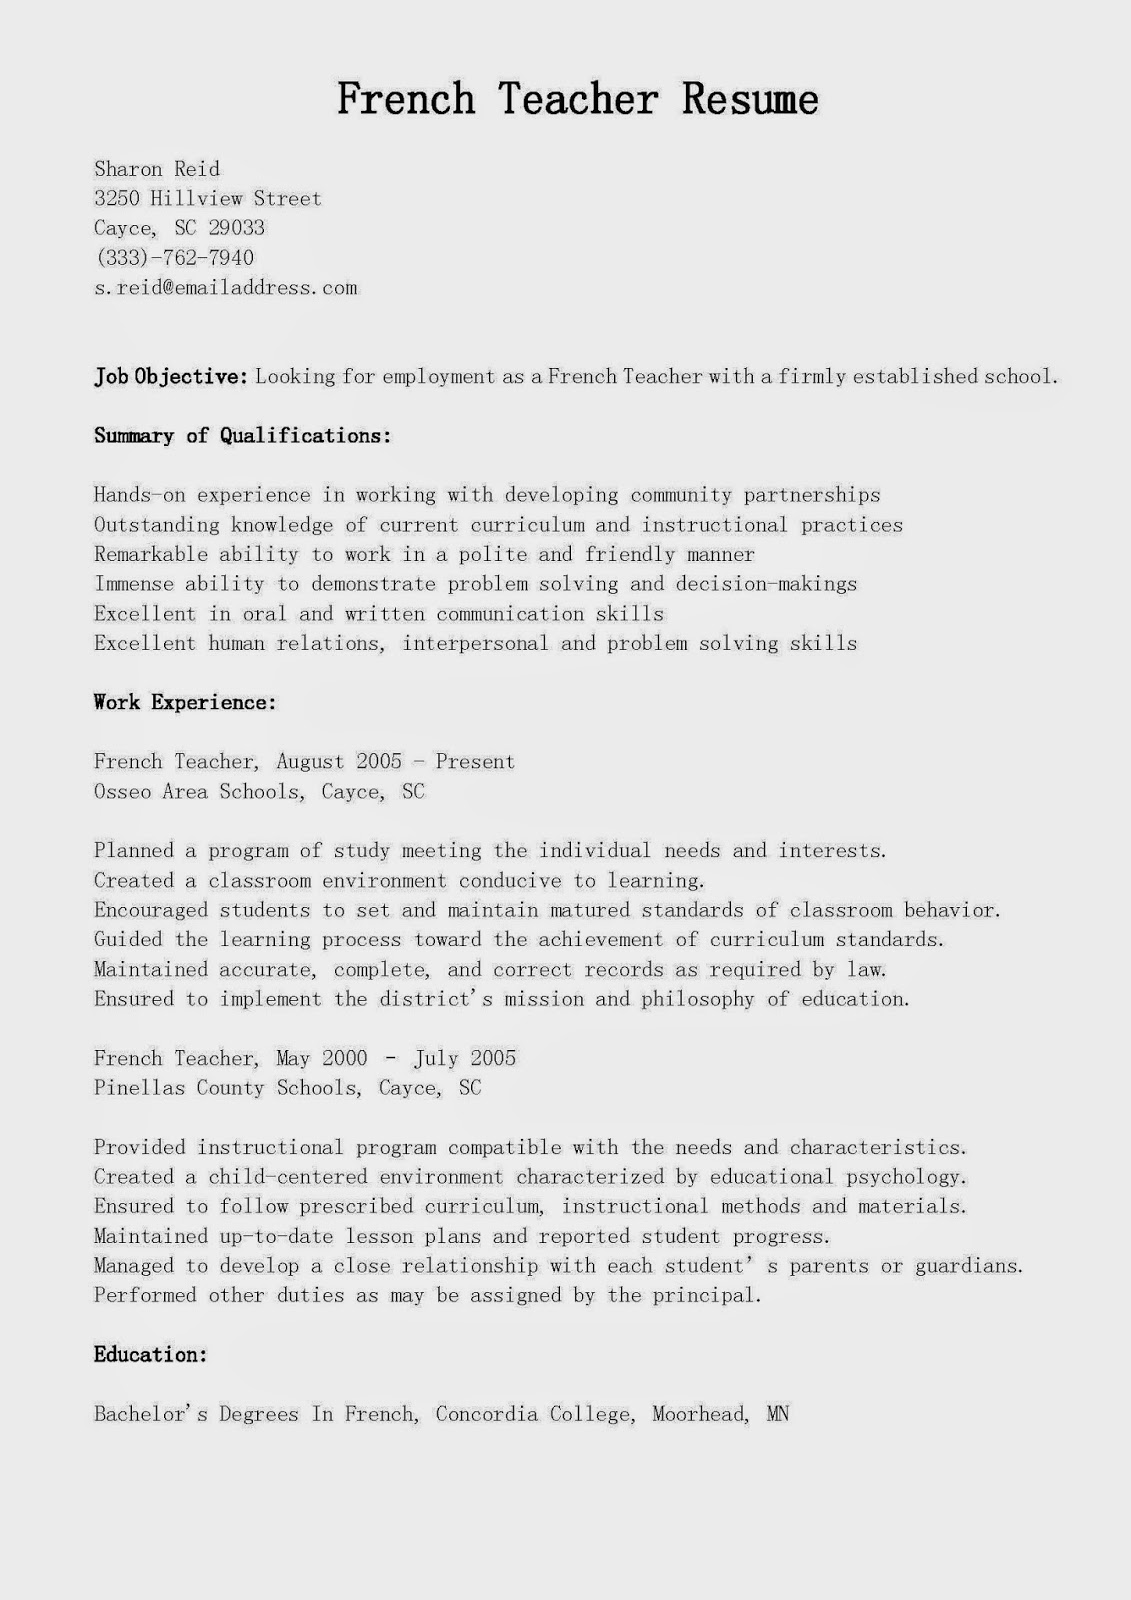 resume samples  french teacher resume sample